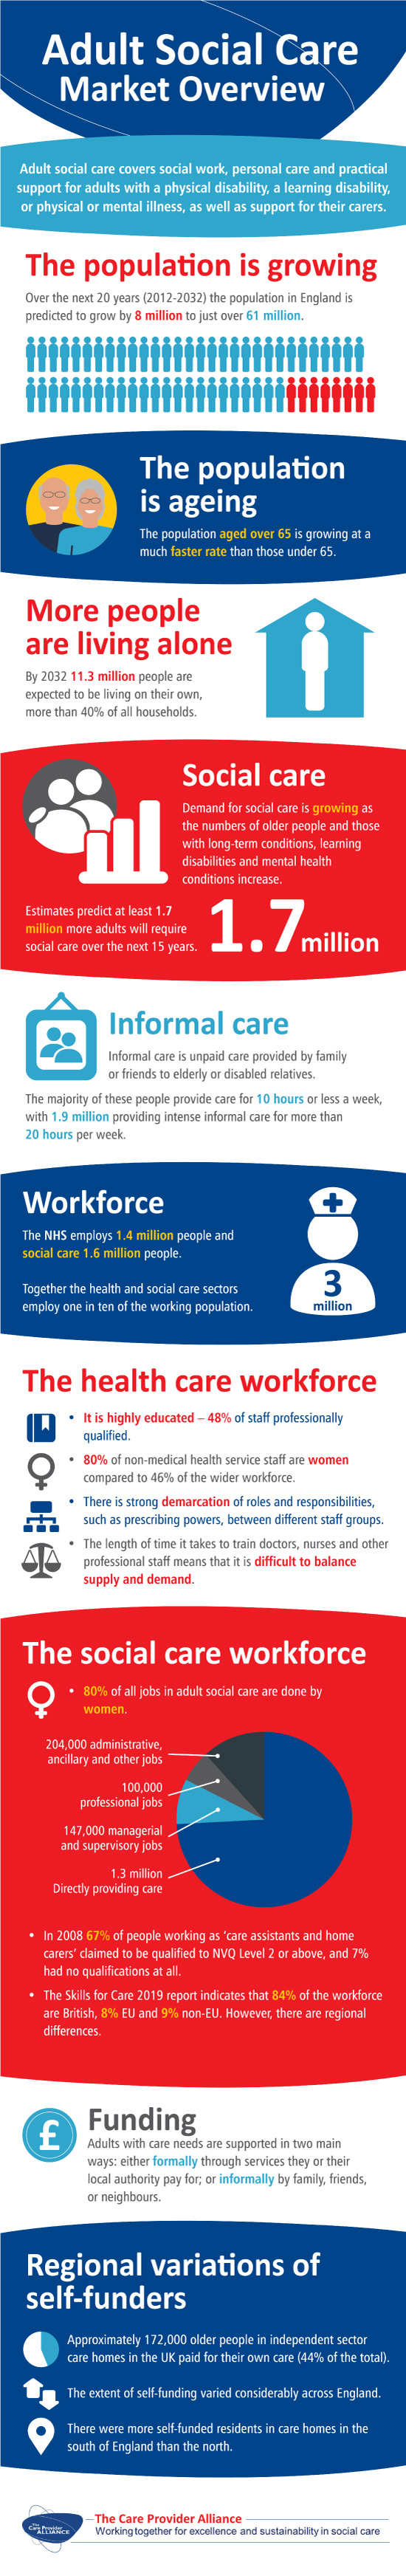 infographic of Social Care Market Overview